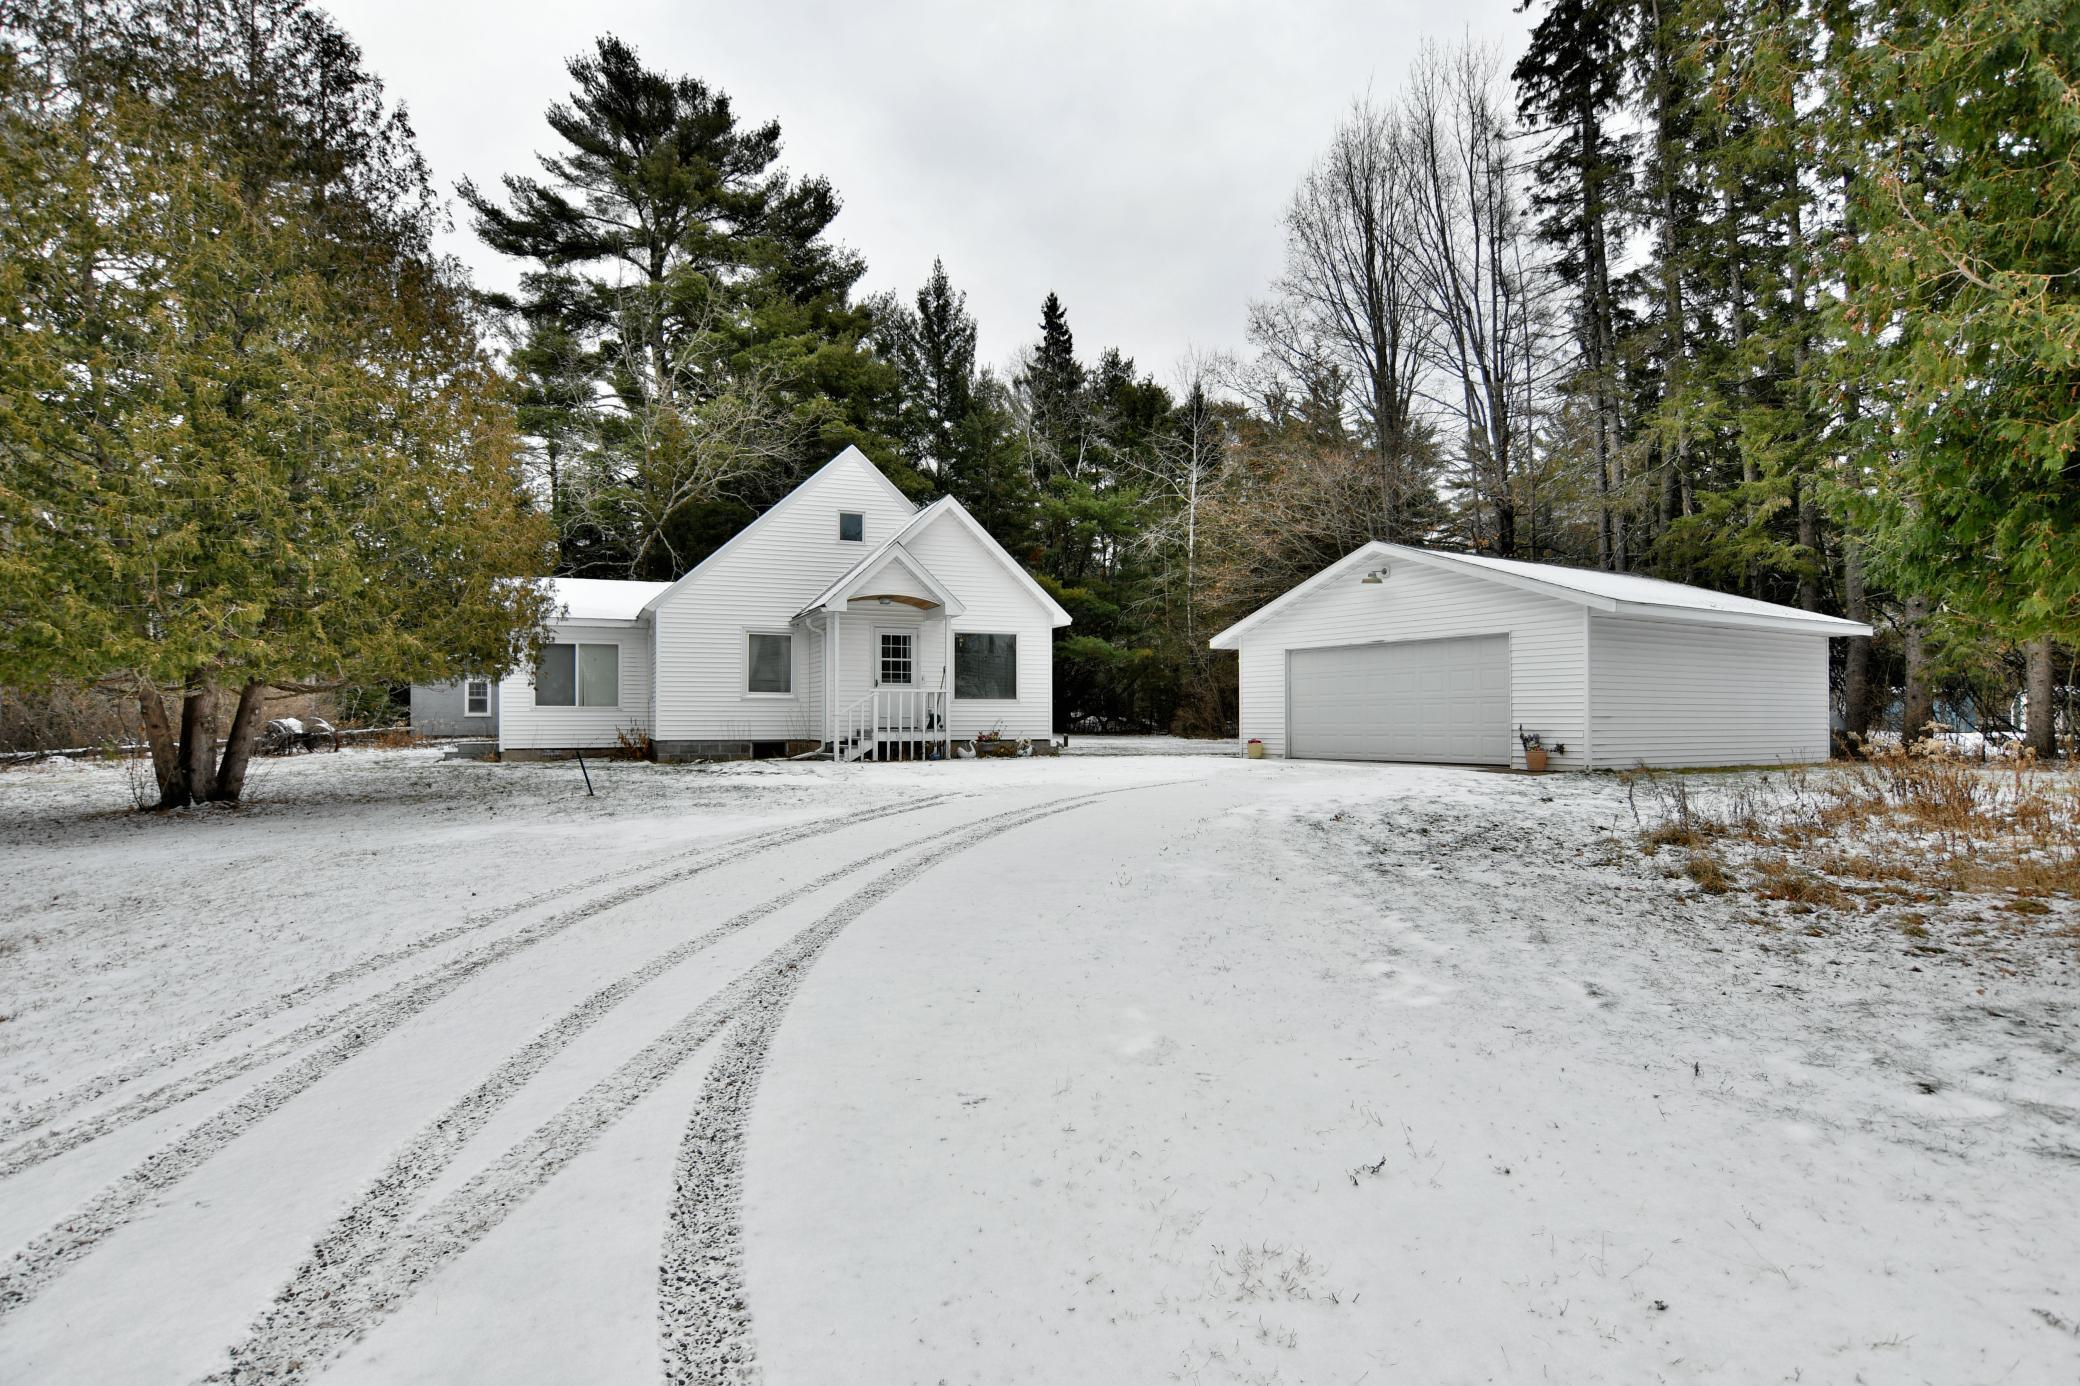 9770 E County Road Y Property Photo - Gordon, WI real estate listing